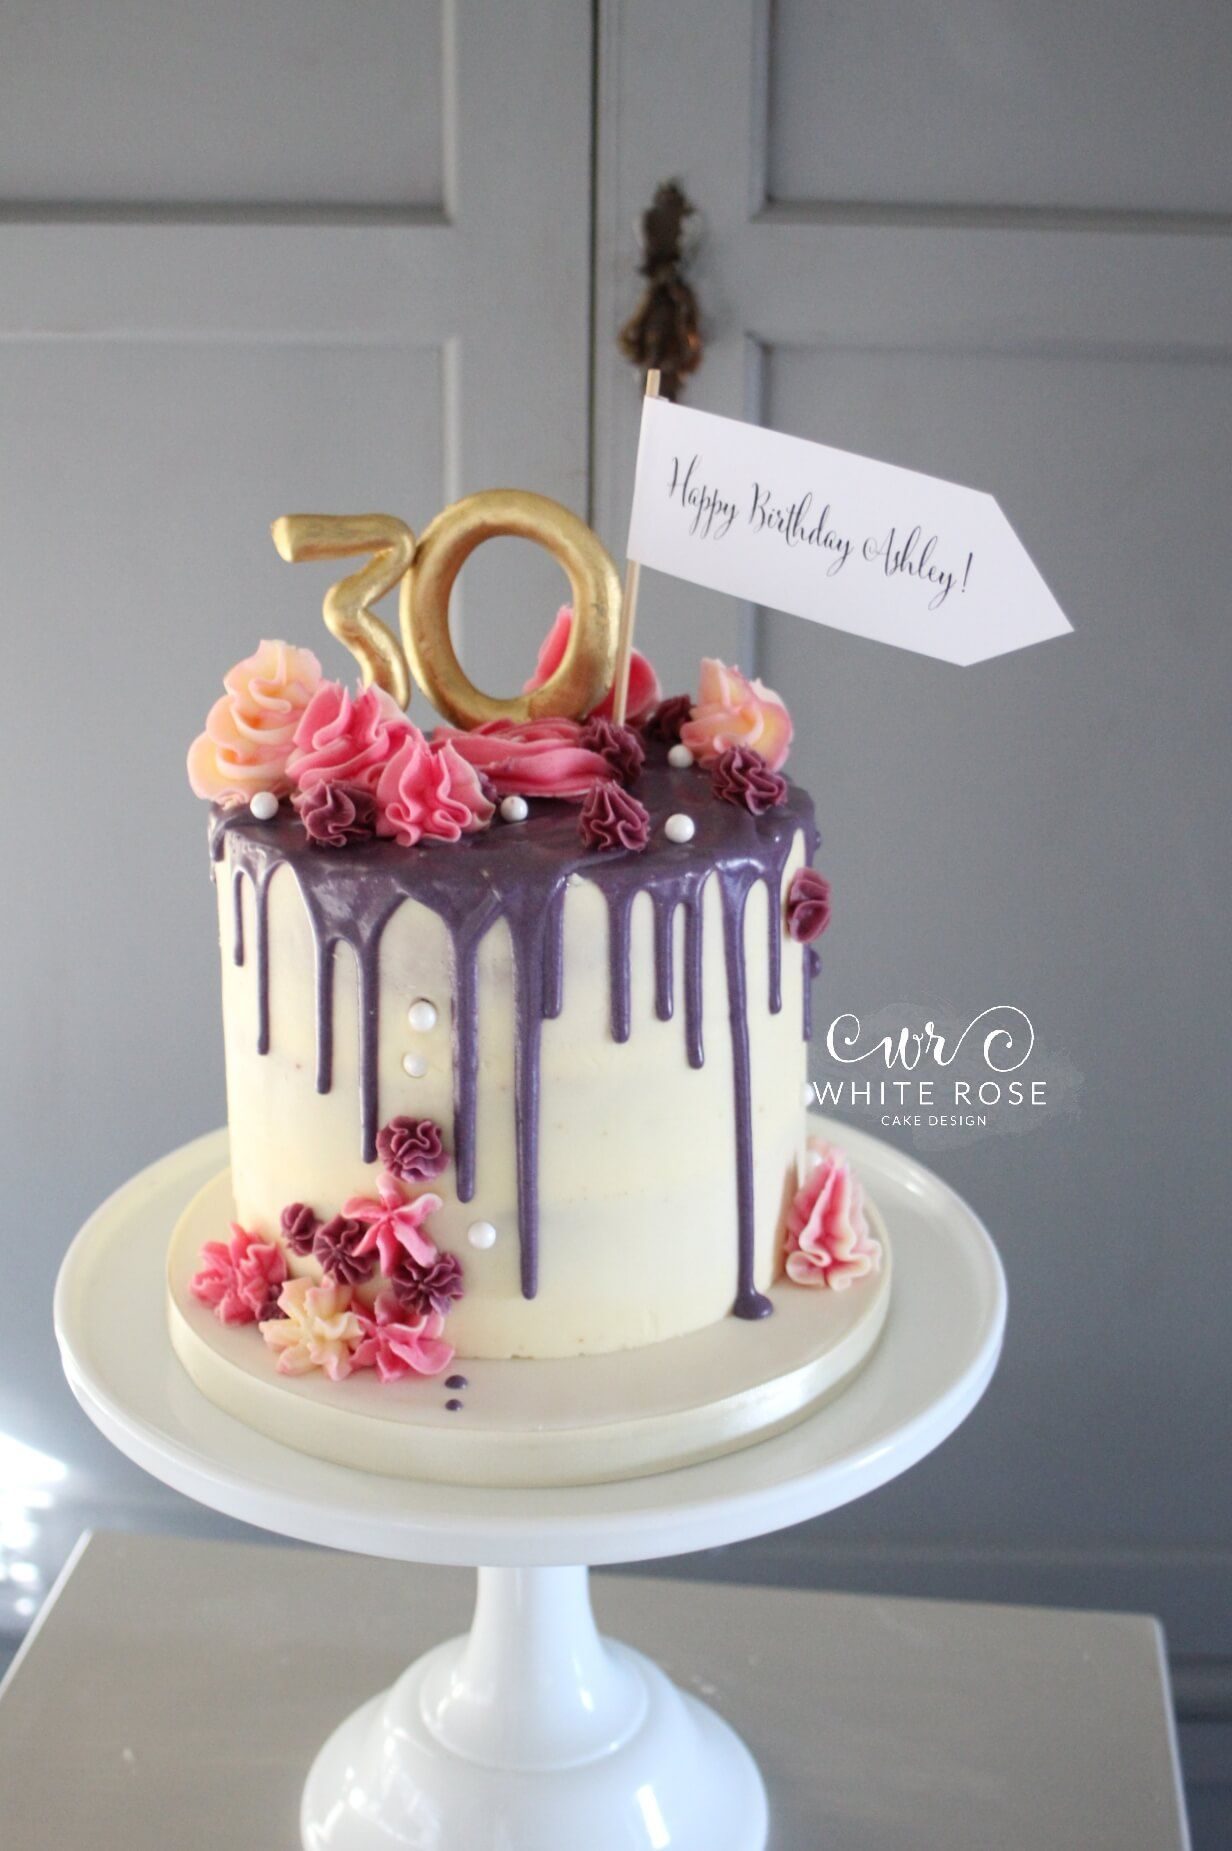 30th Drippy Birthday Cake By White Rose Cake Design 2 Cakes